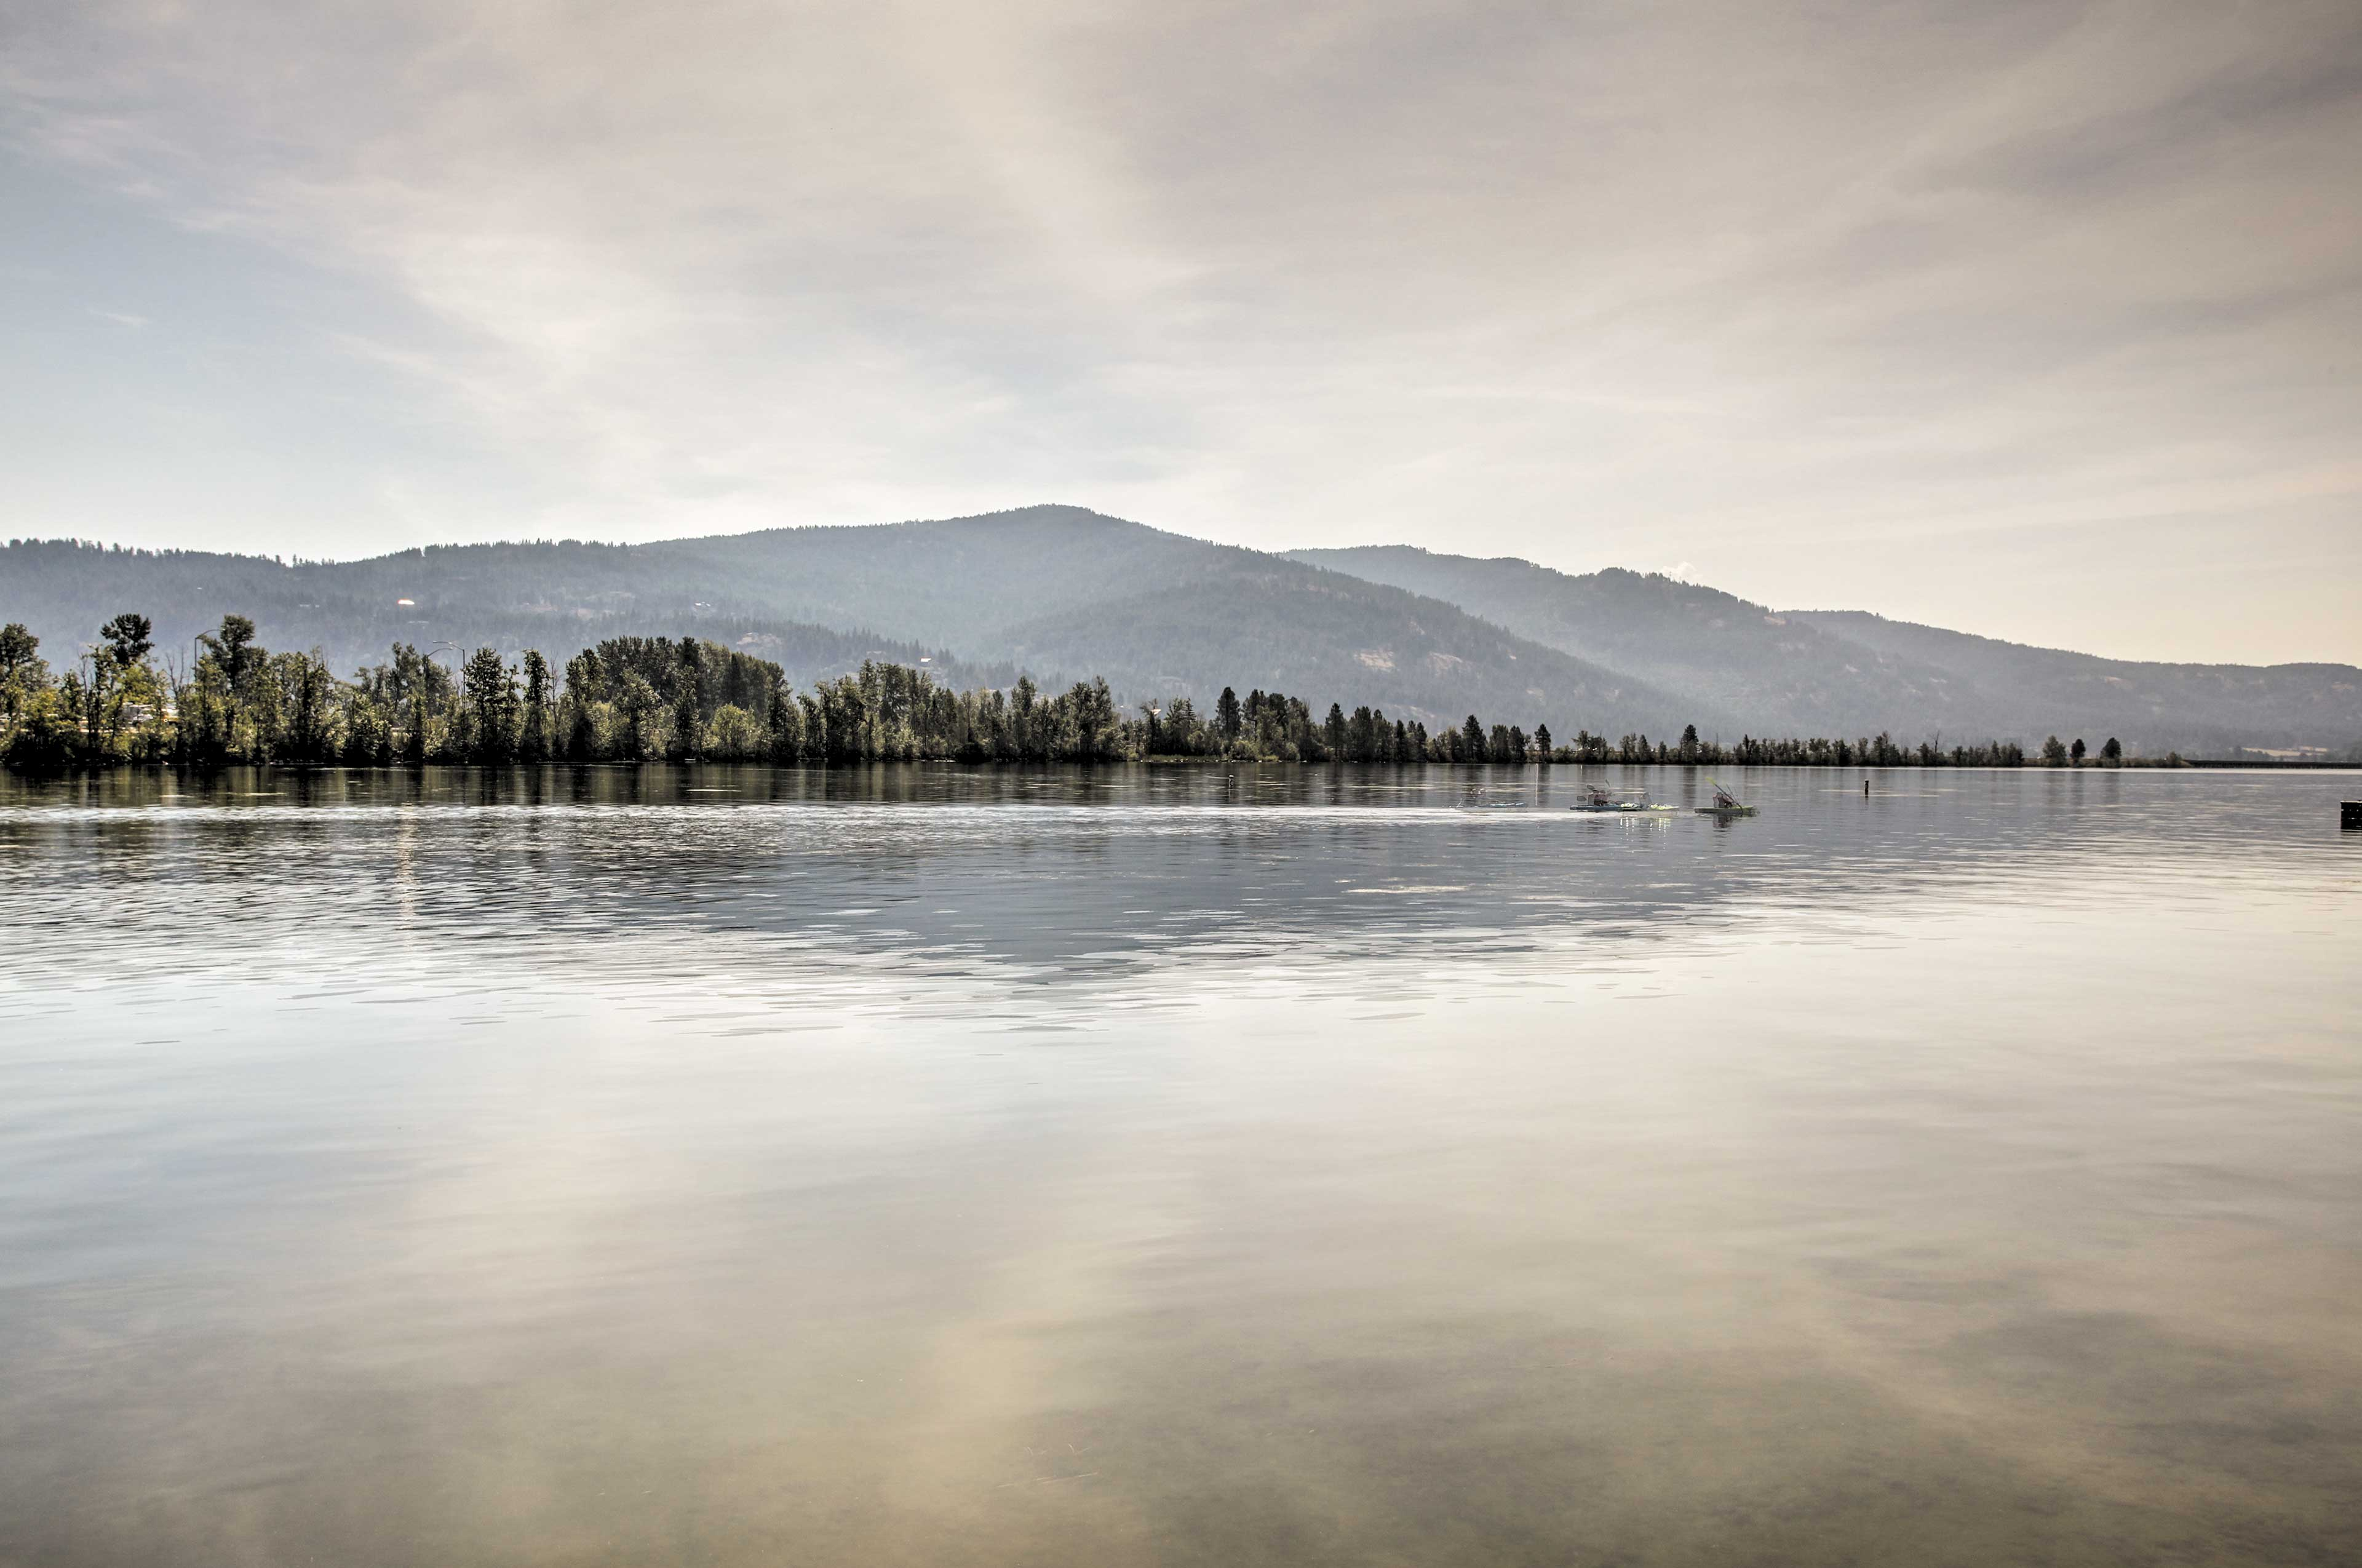 Explore the waters of Lake Pend Oreille by boat and go fishing.